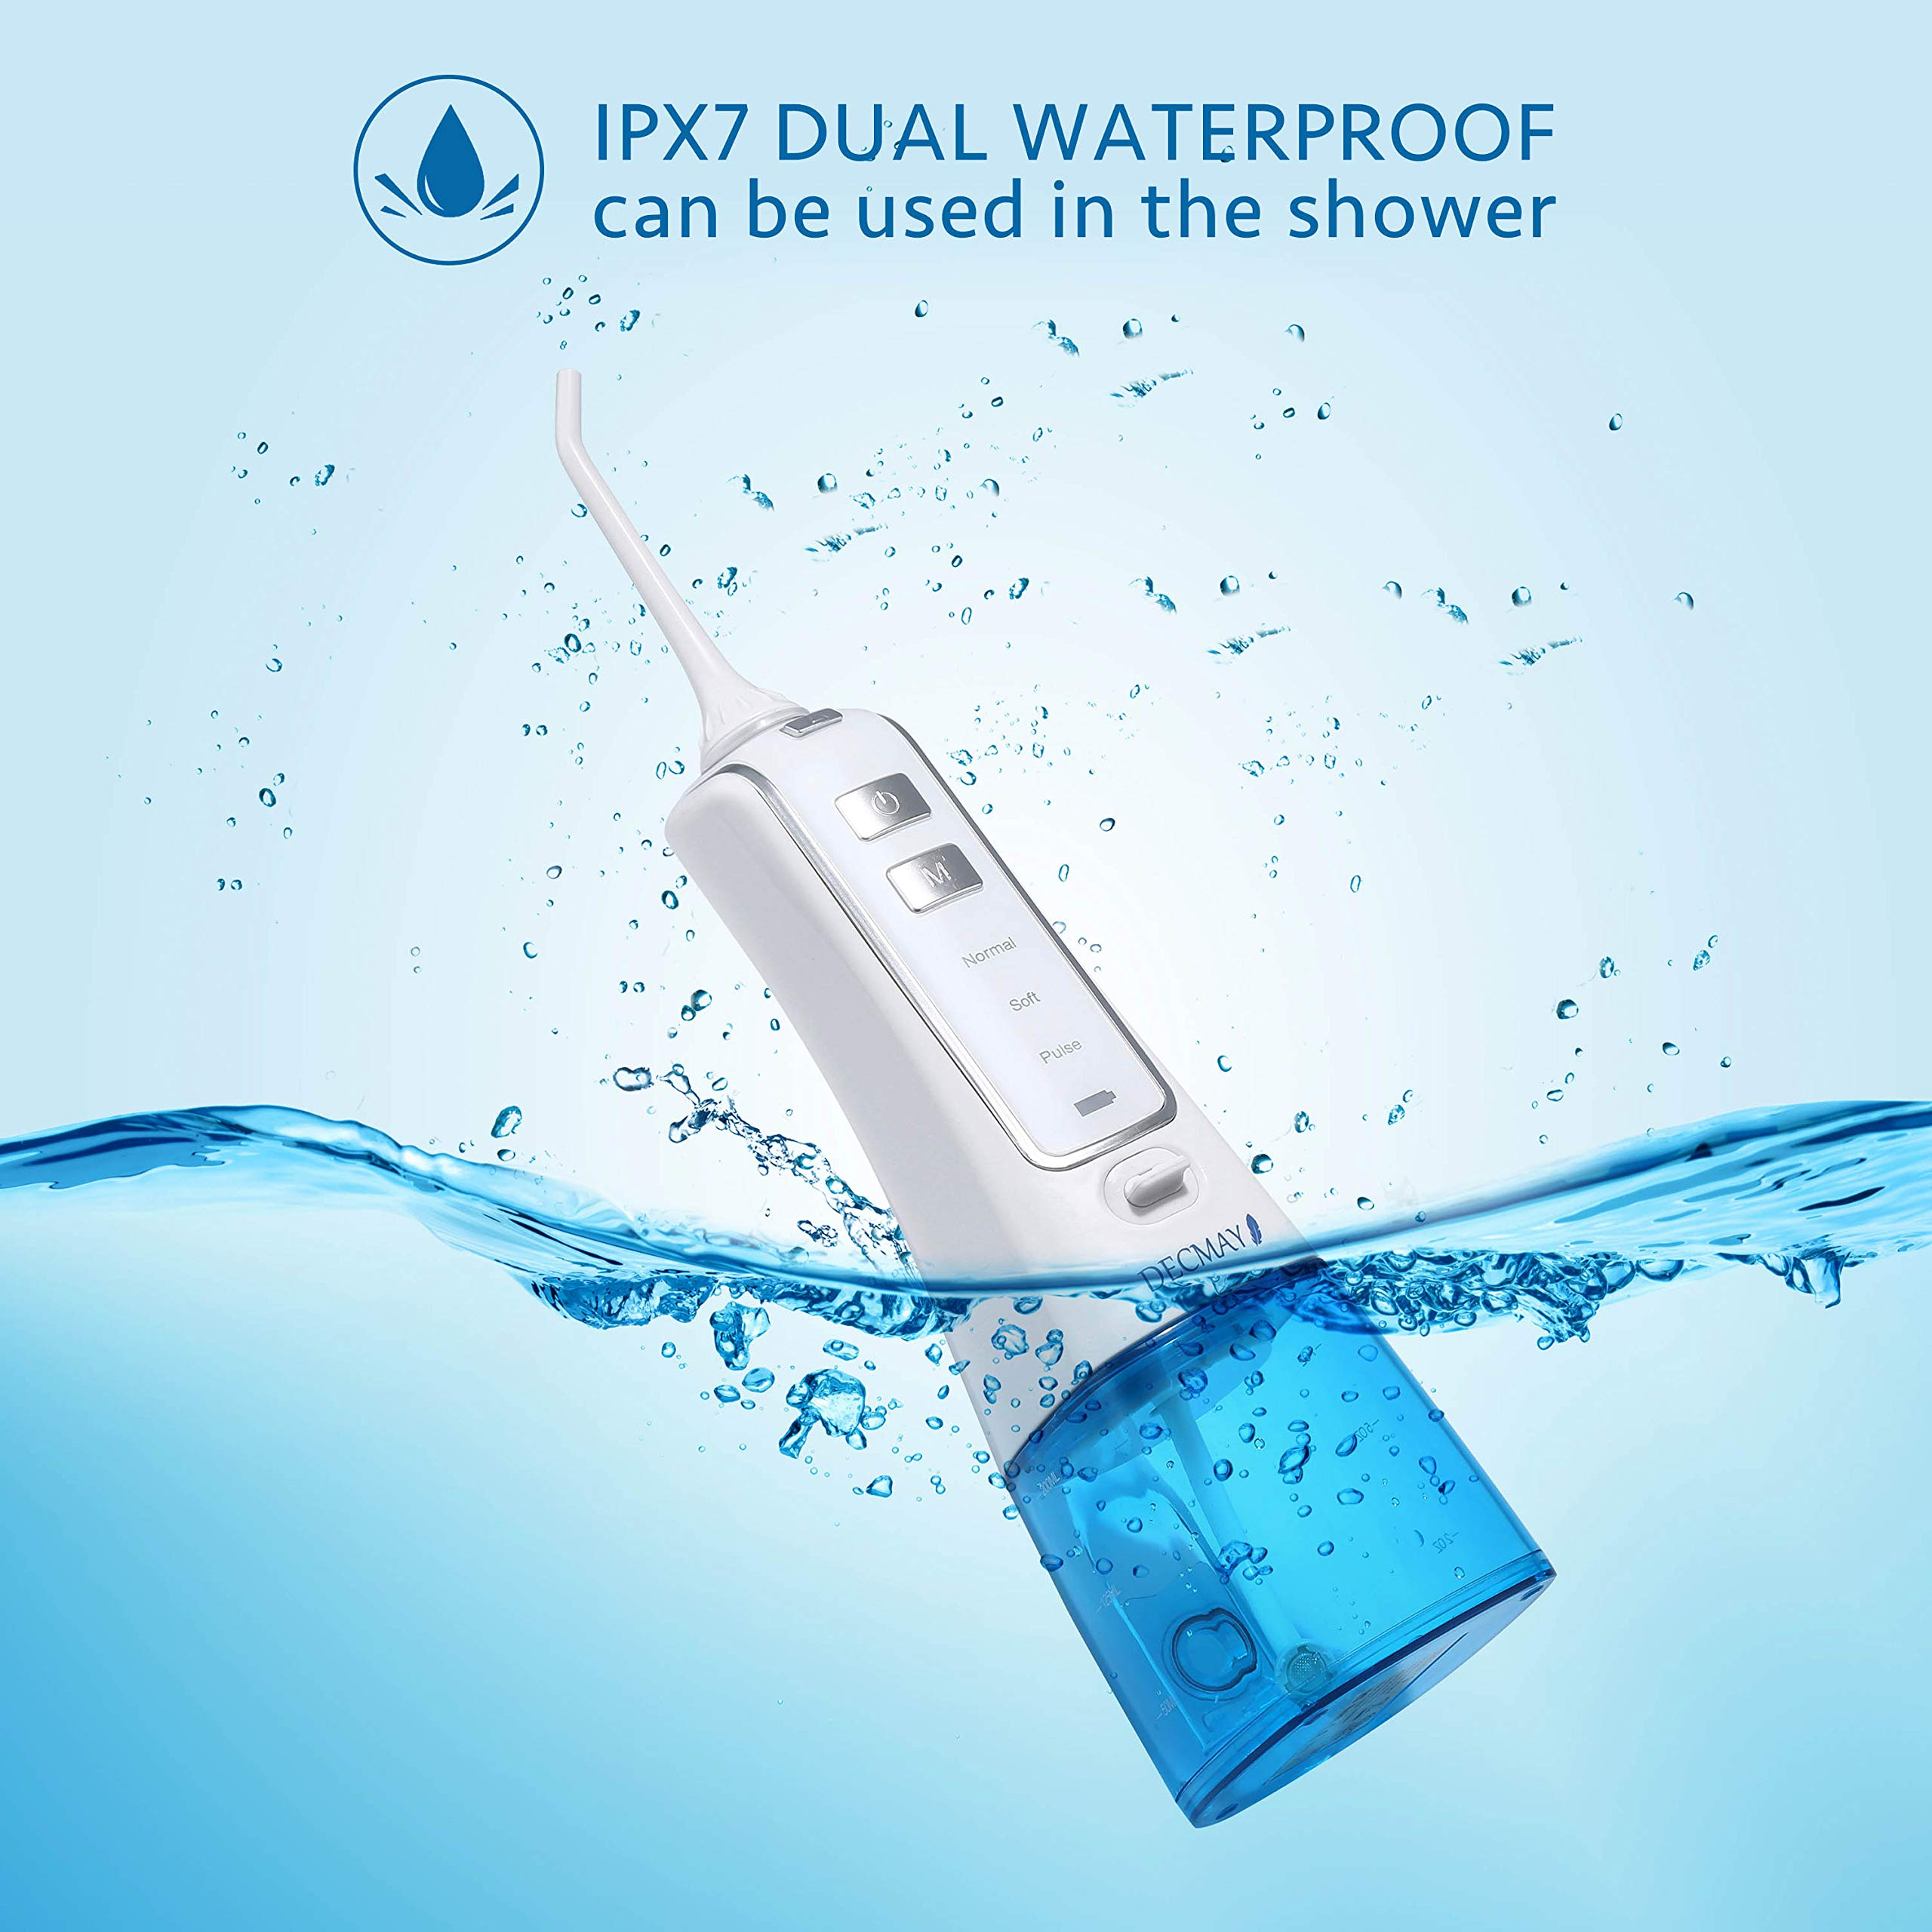 Cordless Water Flosser Rechargeable Oral Irrigator Portable for Teeth Dental Flosser with 3 Modes 4 Jet Tips for Braces, IPX7 Waterproof, 200ml Reservoir and LCD Battery Indicator, Travel and Home Use